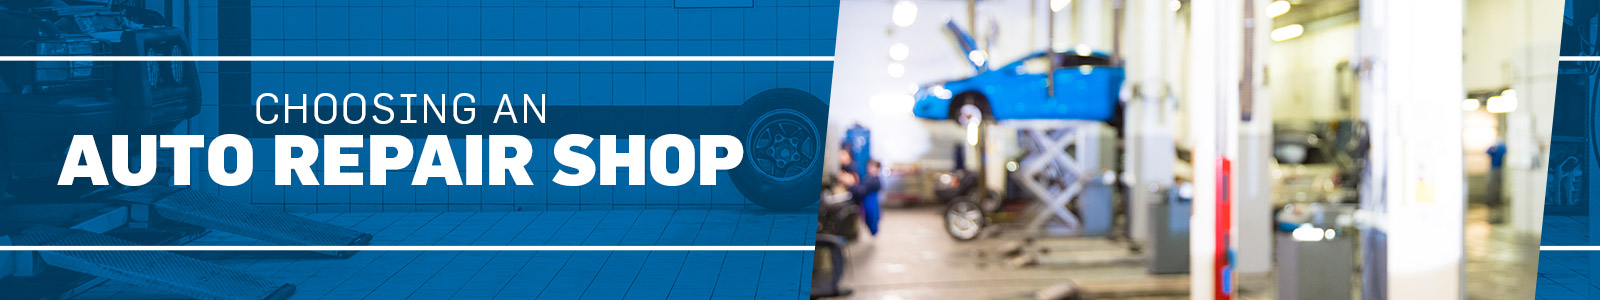 How To Choose An Auto Repair Shop | Tipton Auto | Brownville, TX